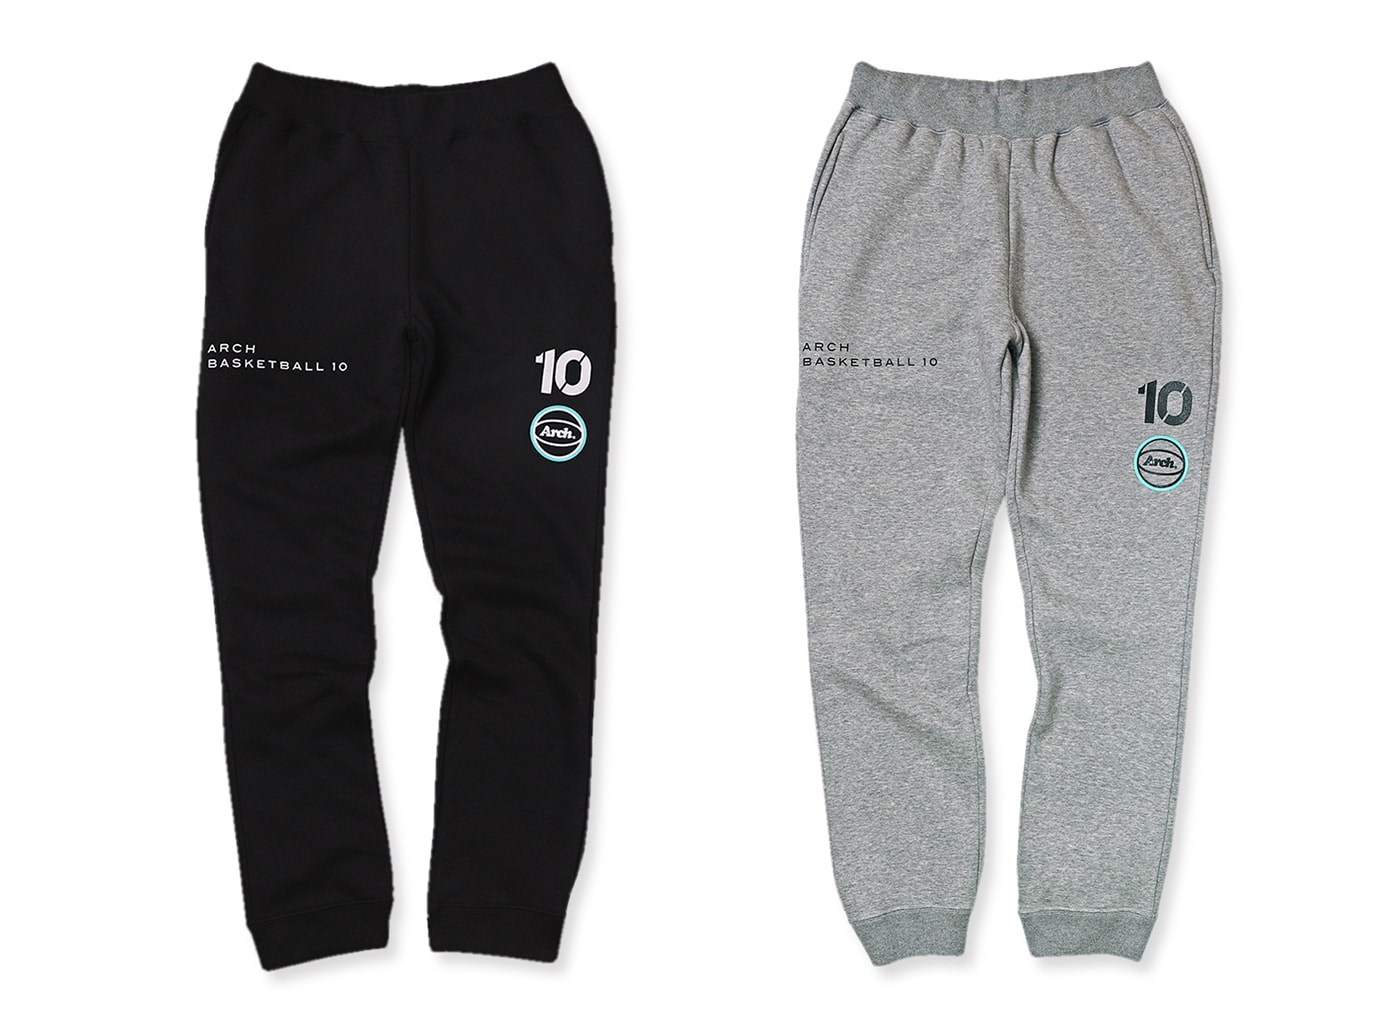 Arch BB10 sweatpants